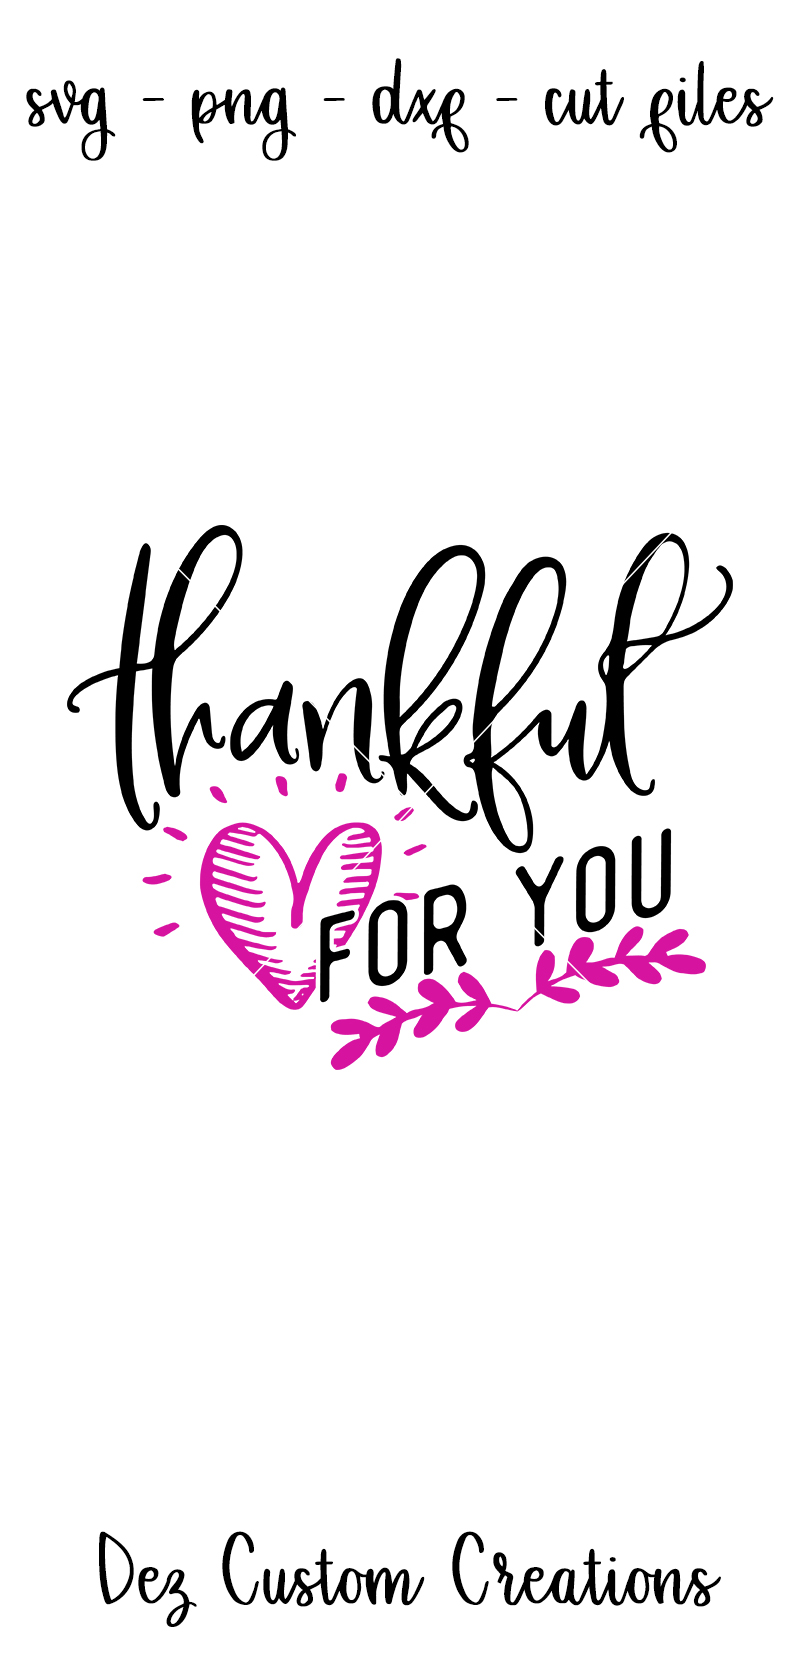 Thankful For You - SVG DXF PNG File example image 3